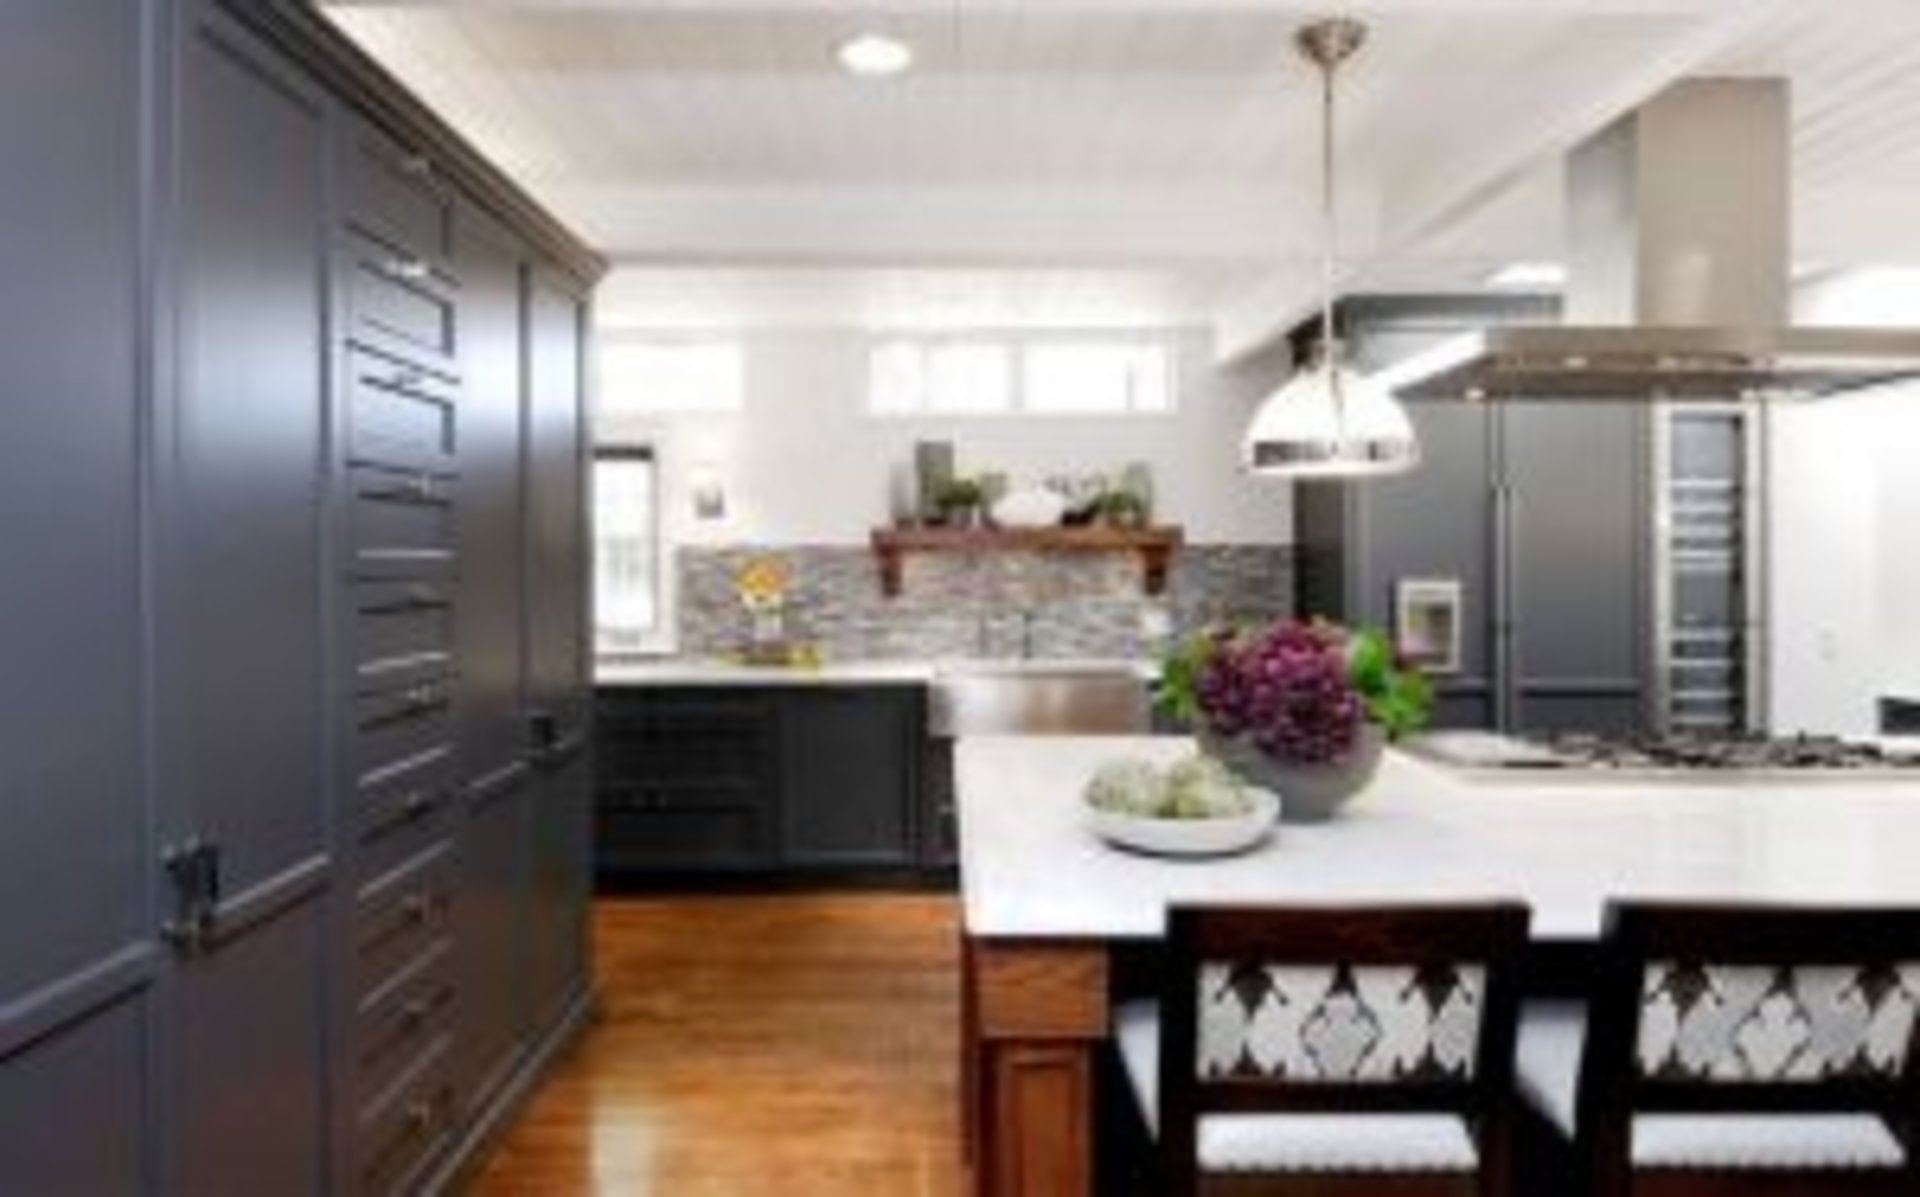 Shaker Style in the Home - kitchen cabinets